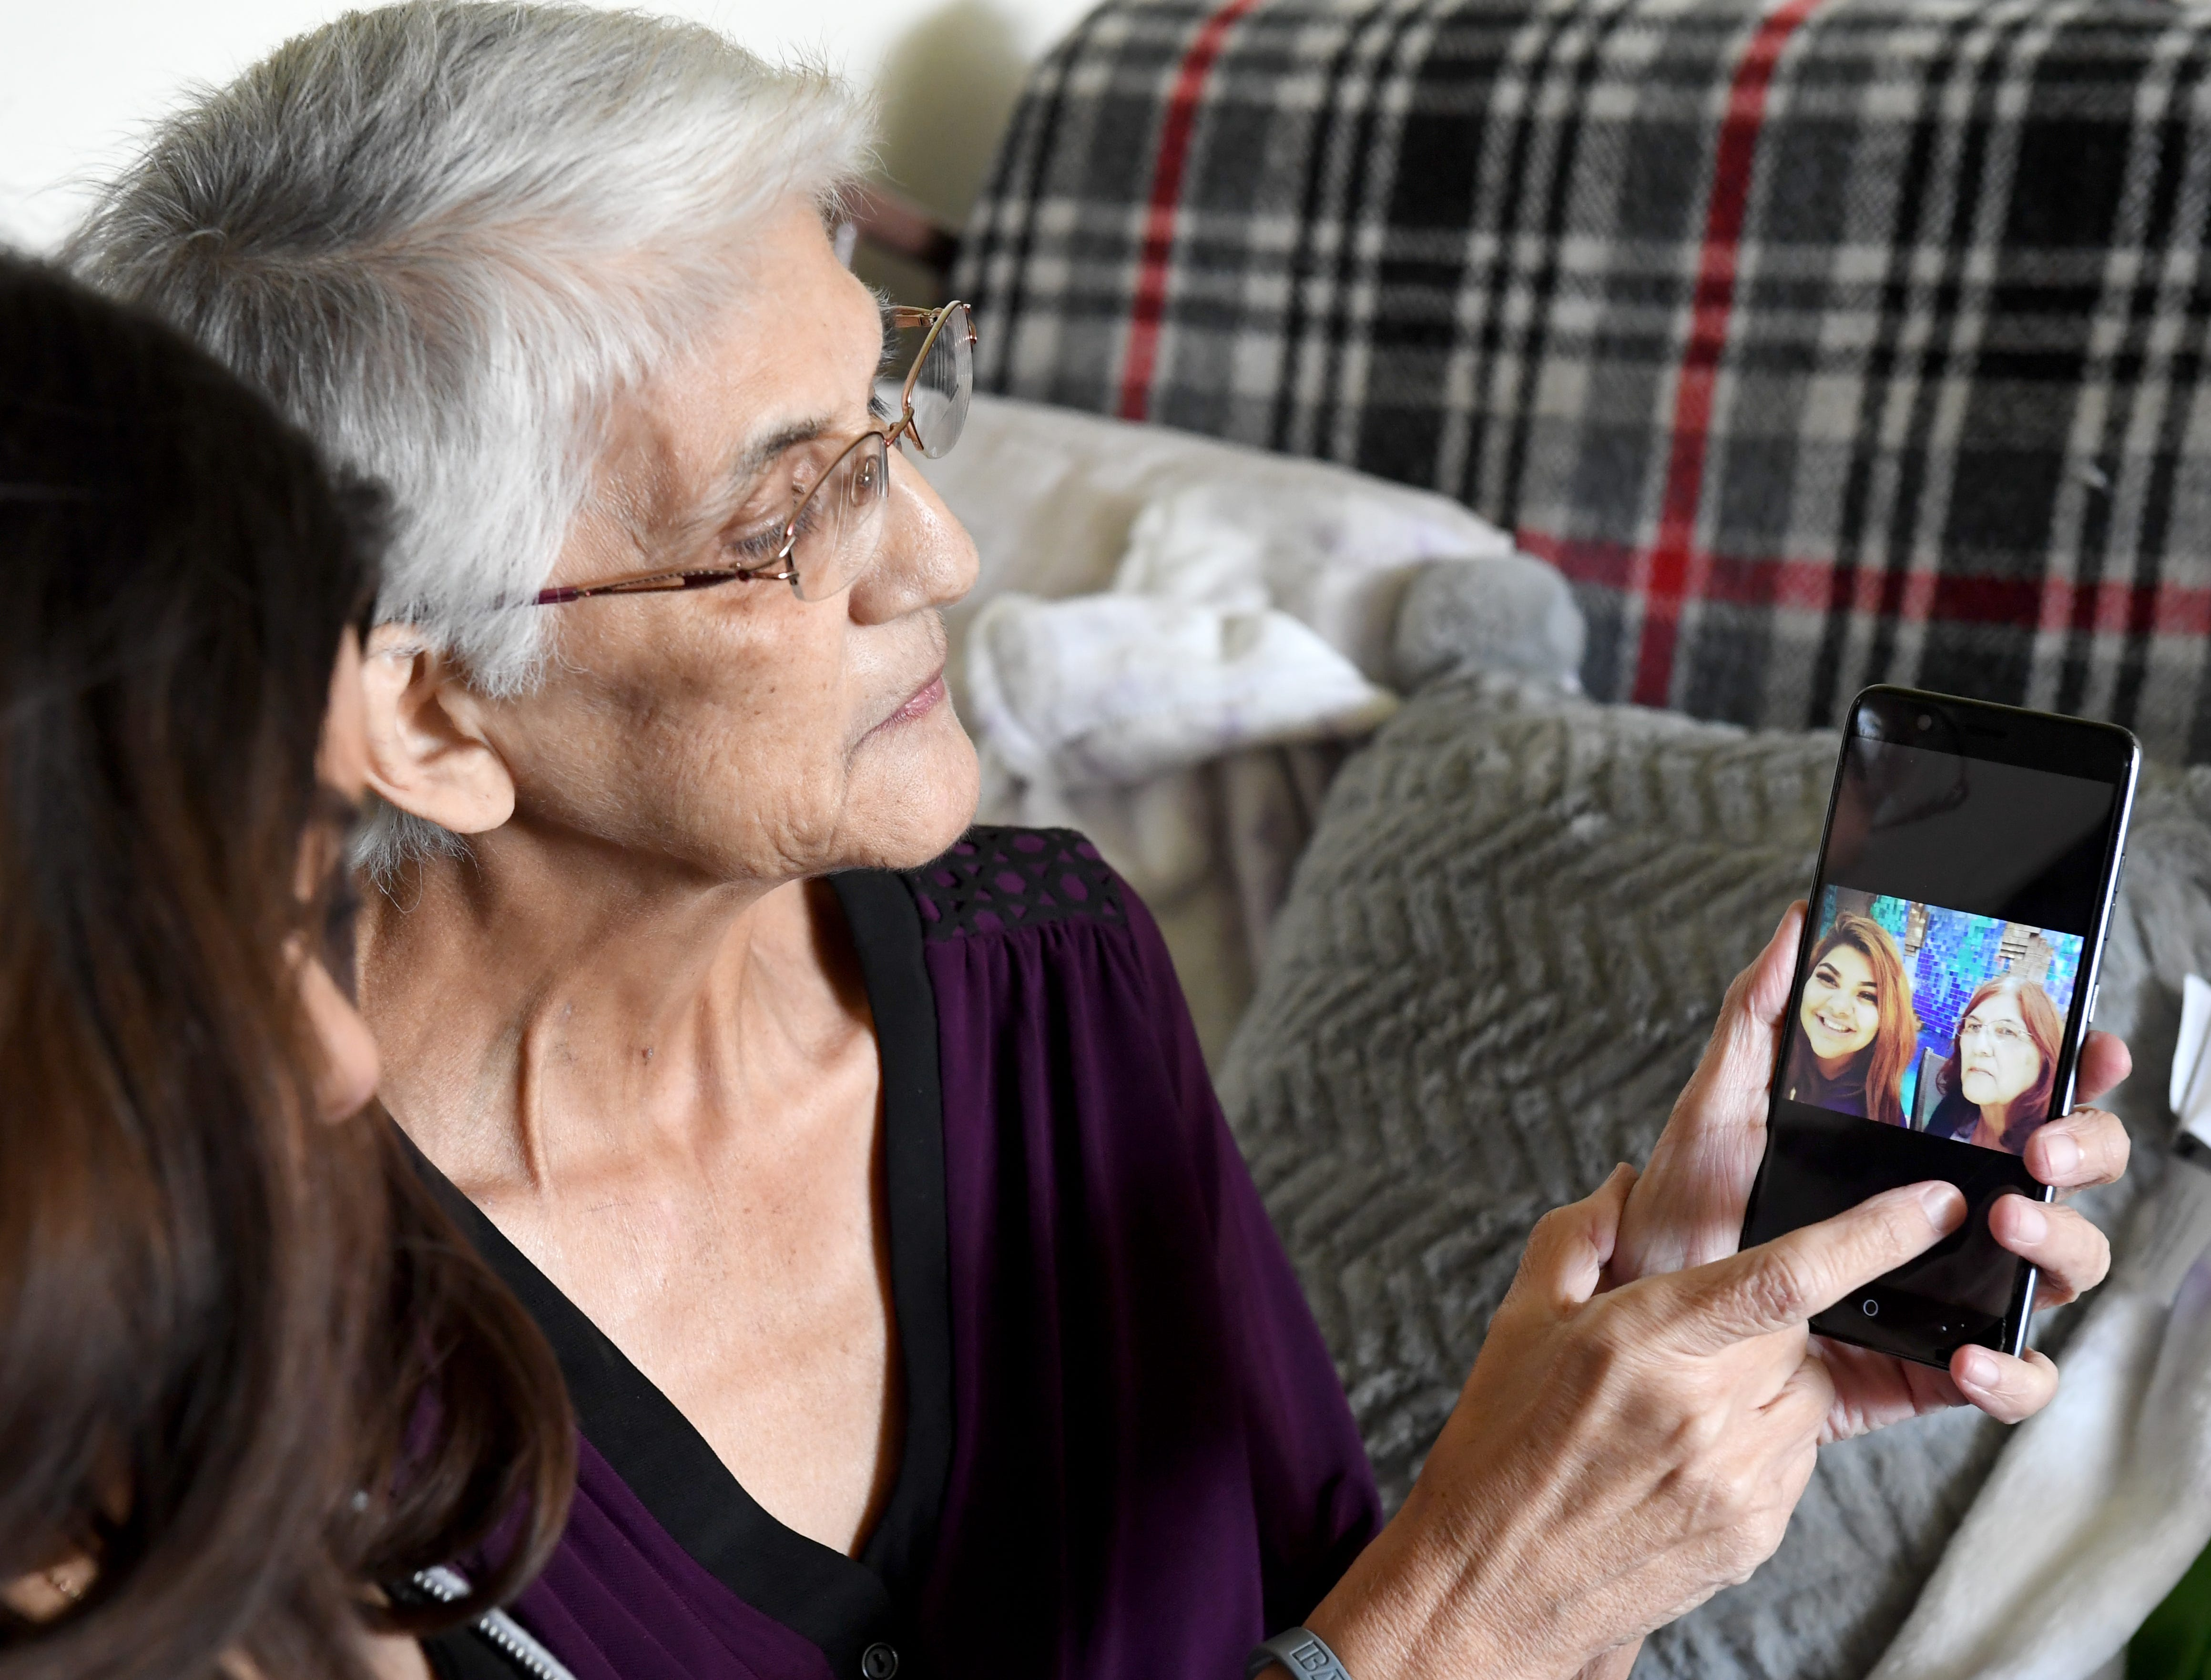 Gloria Torrez scrolls through photos from happier times on her phone.